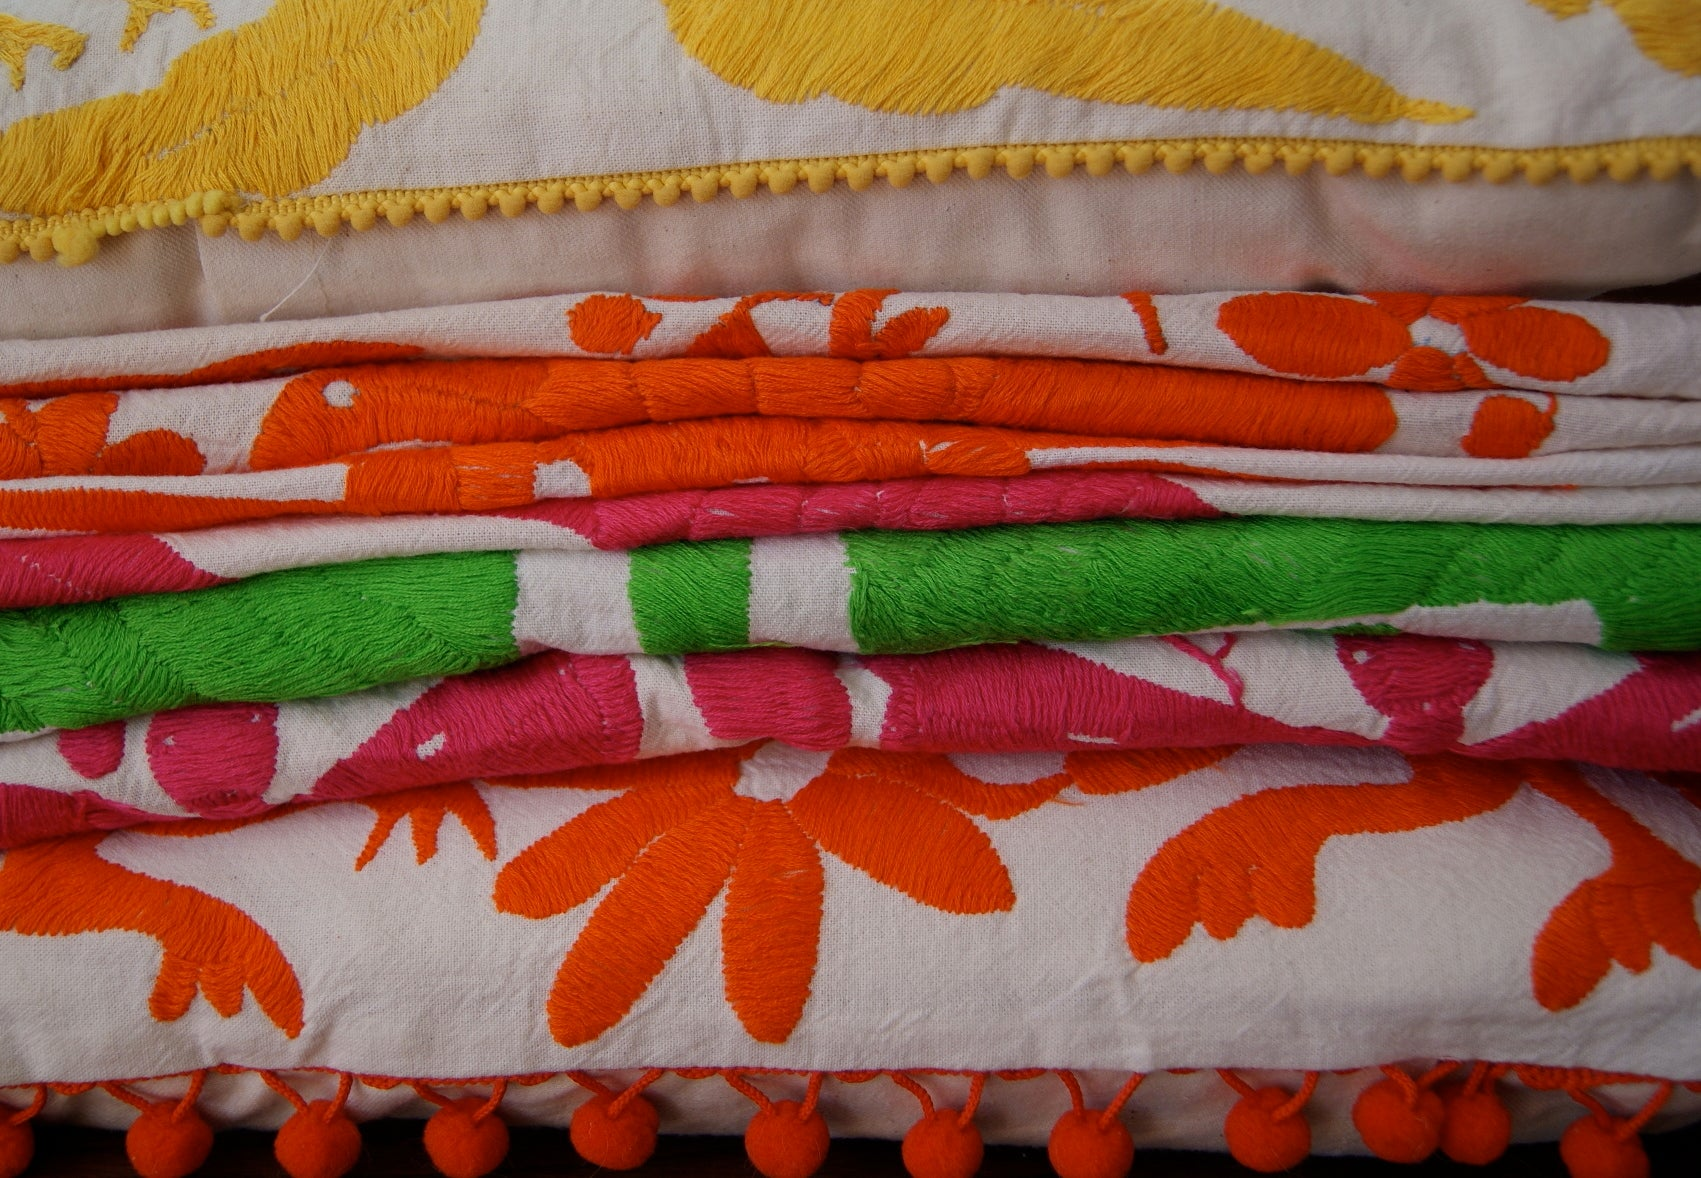 Embroidered Mexican textiles